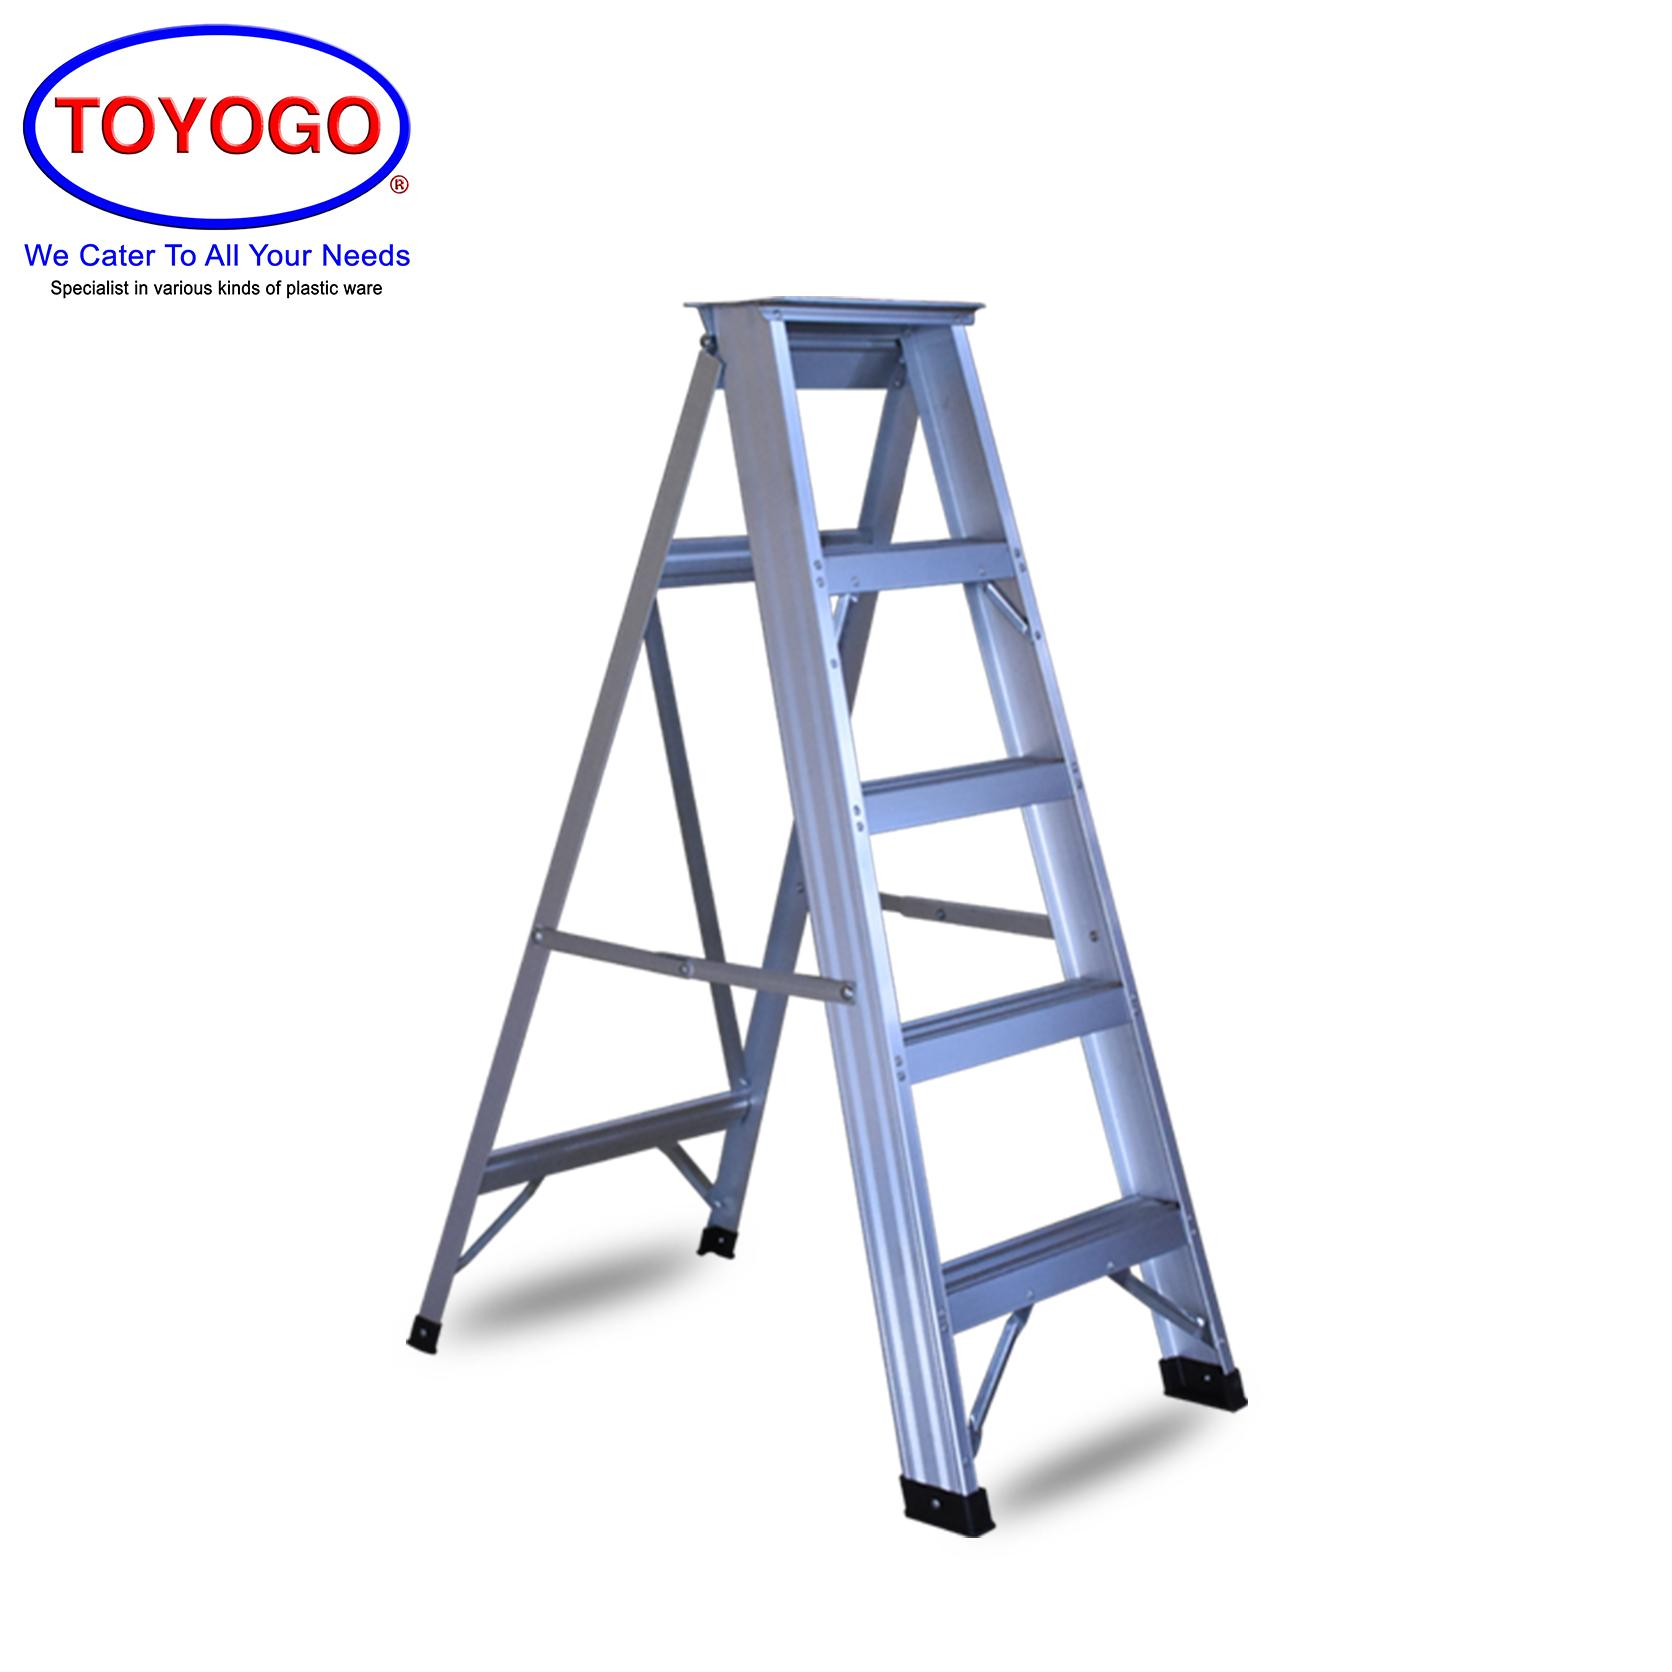 Toyogo Alum Ladder (5 Step) (HFH5545) W21